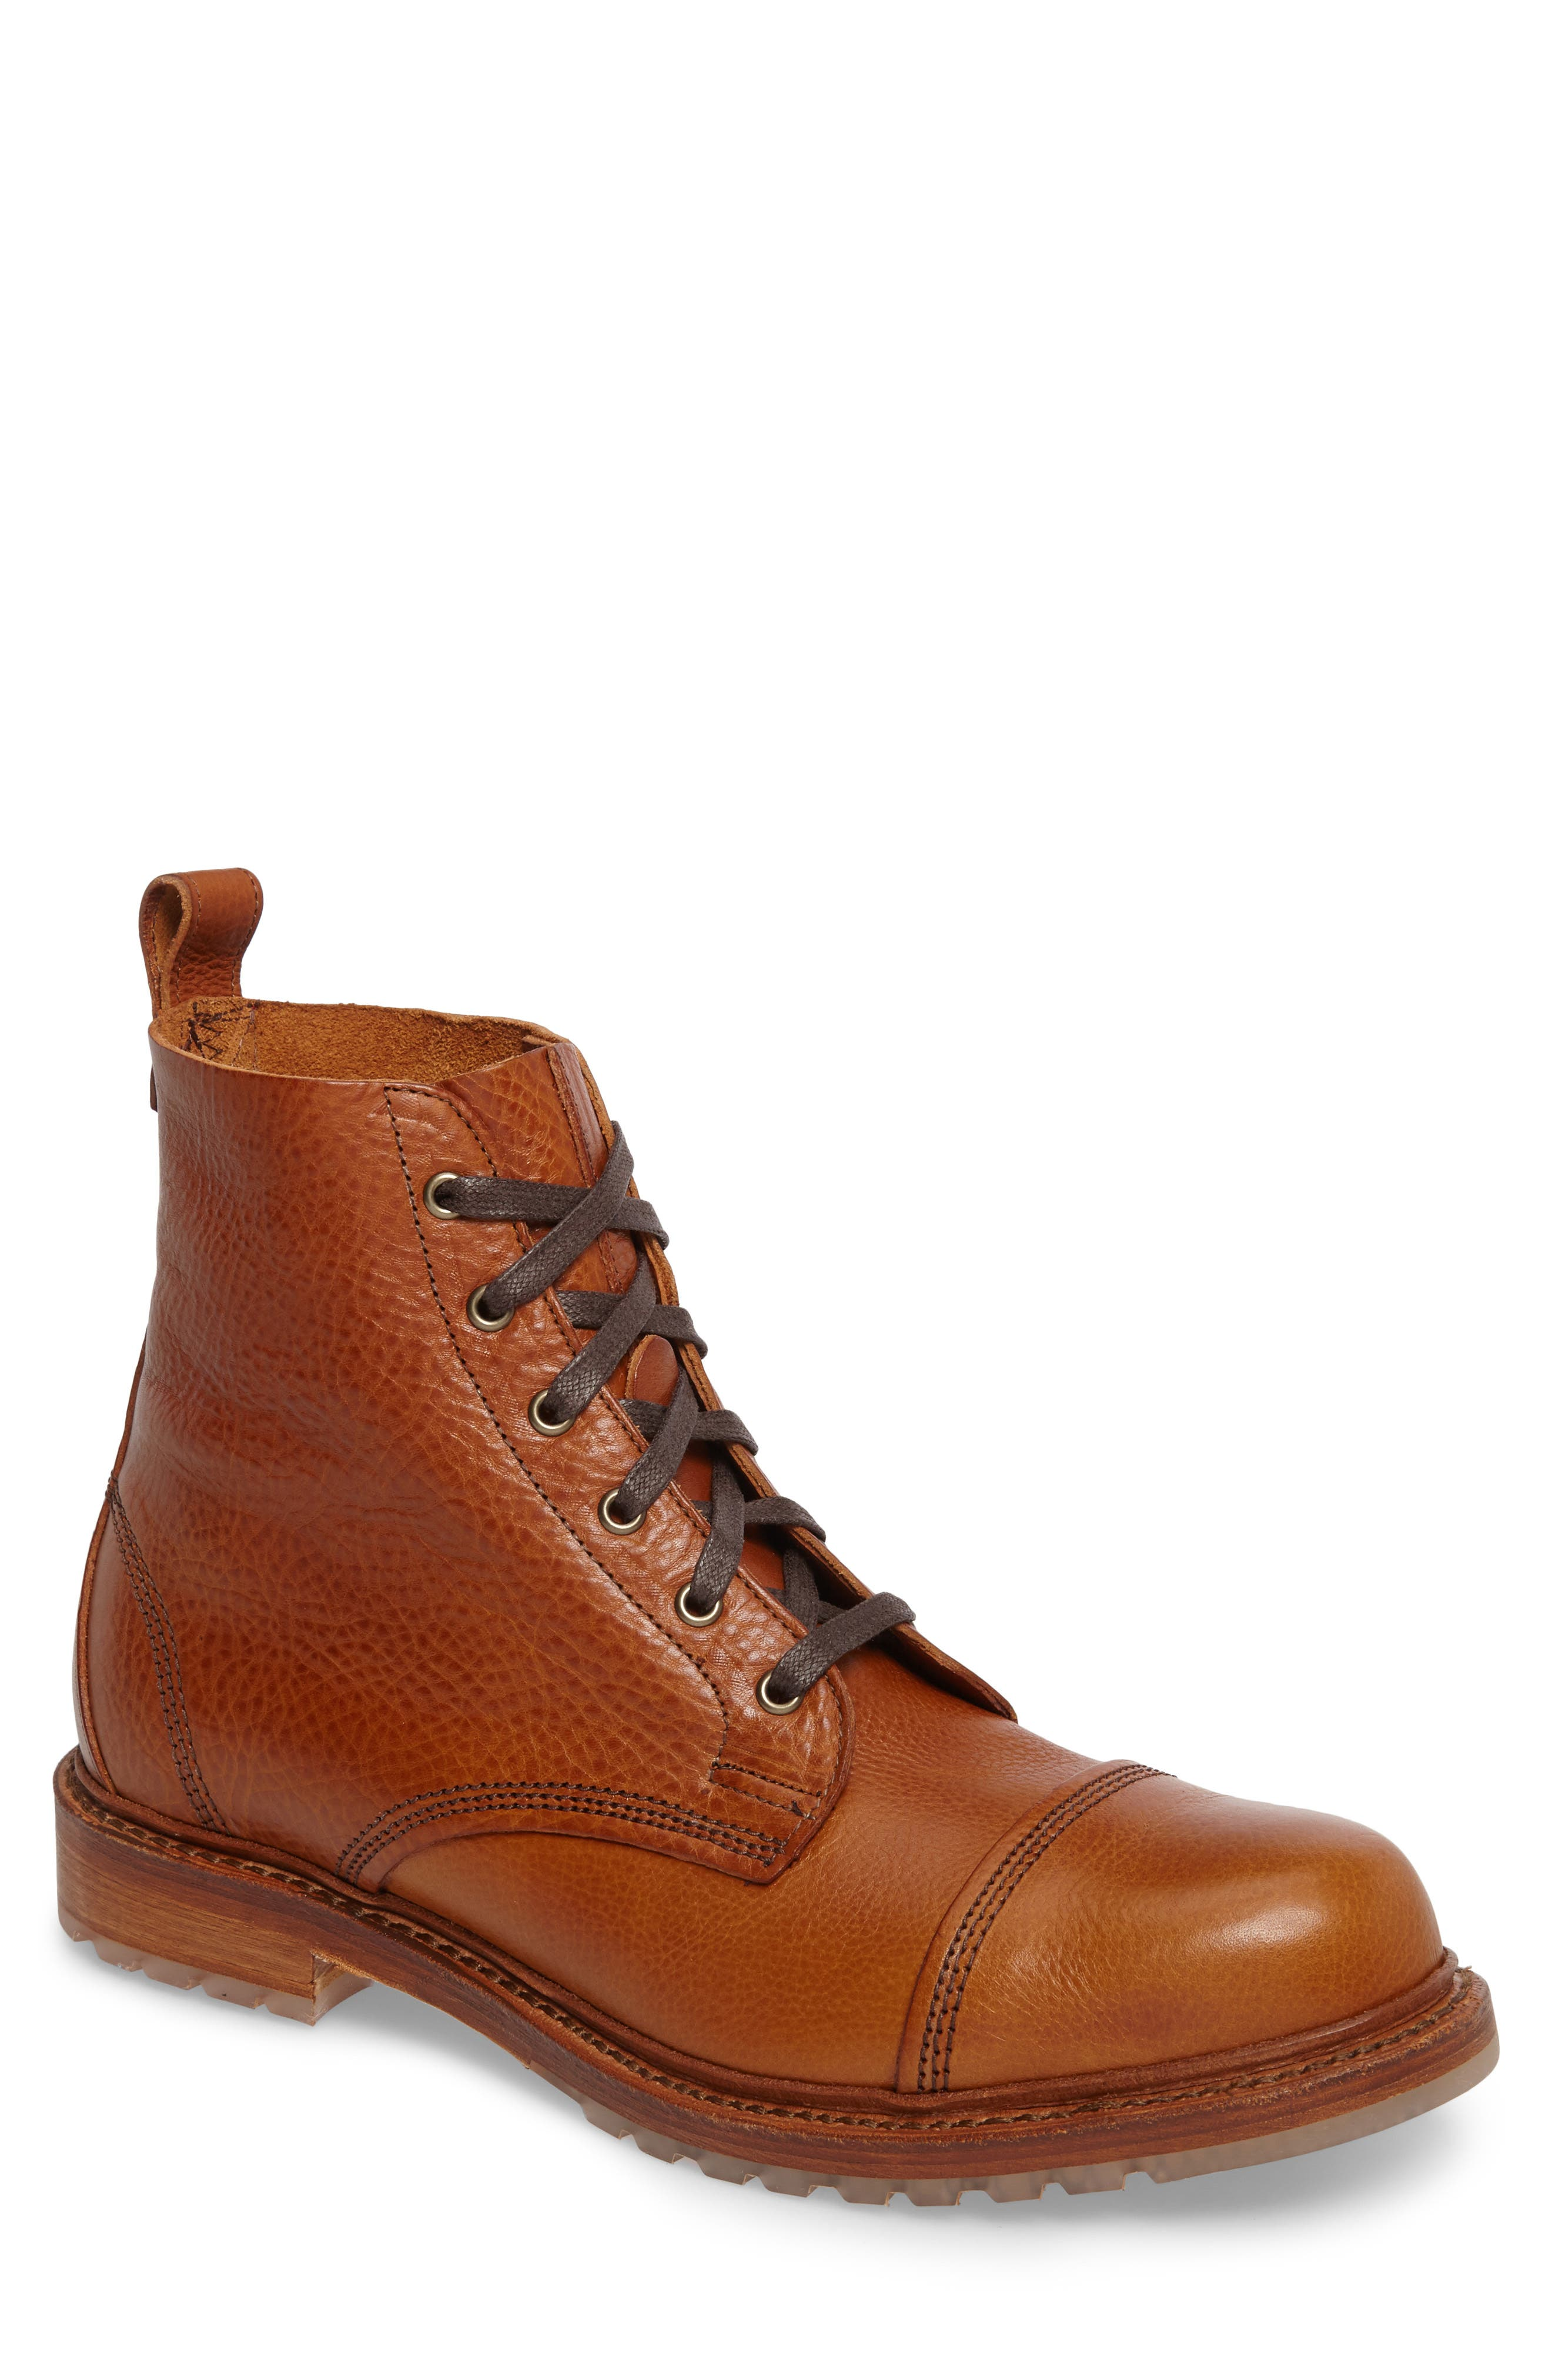 Allen Edmonds Caen Cap Toe Boot (Men)